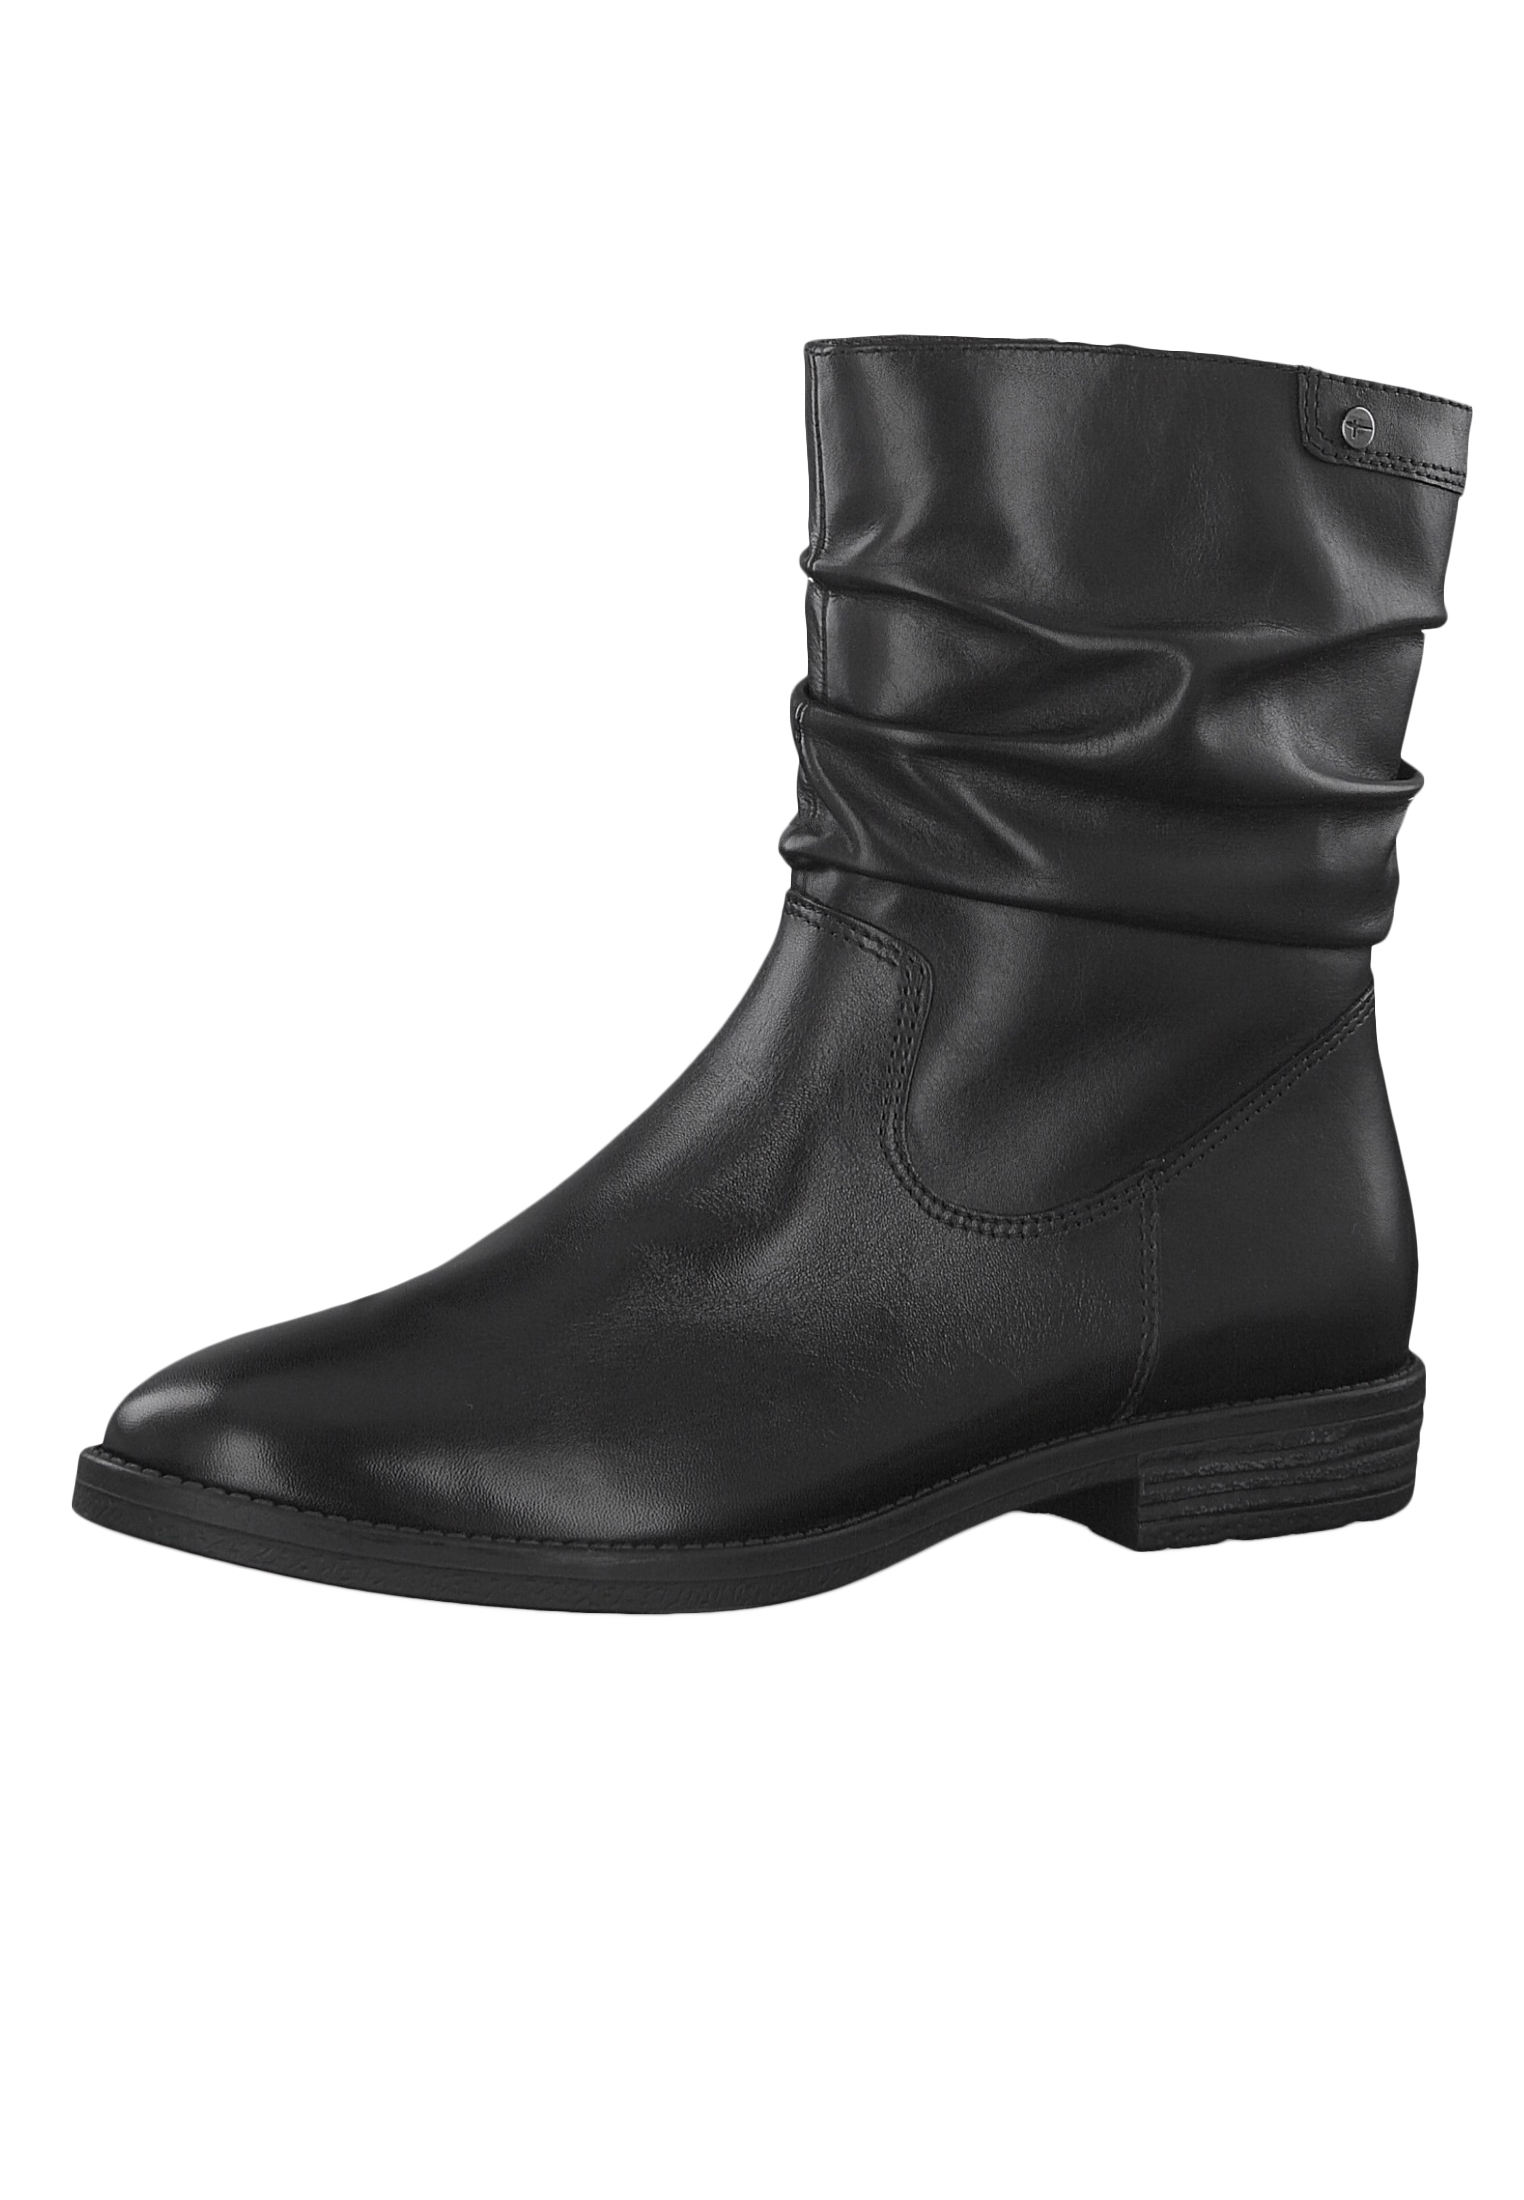 1 25014 23 001 Damen Stiefelette Leder Black Schwarz mit TOUCH IT Sohle